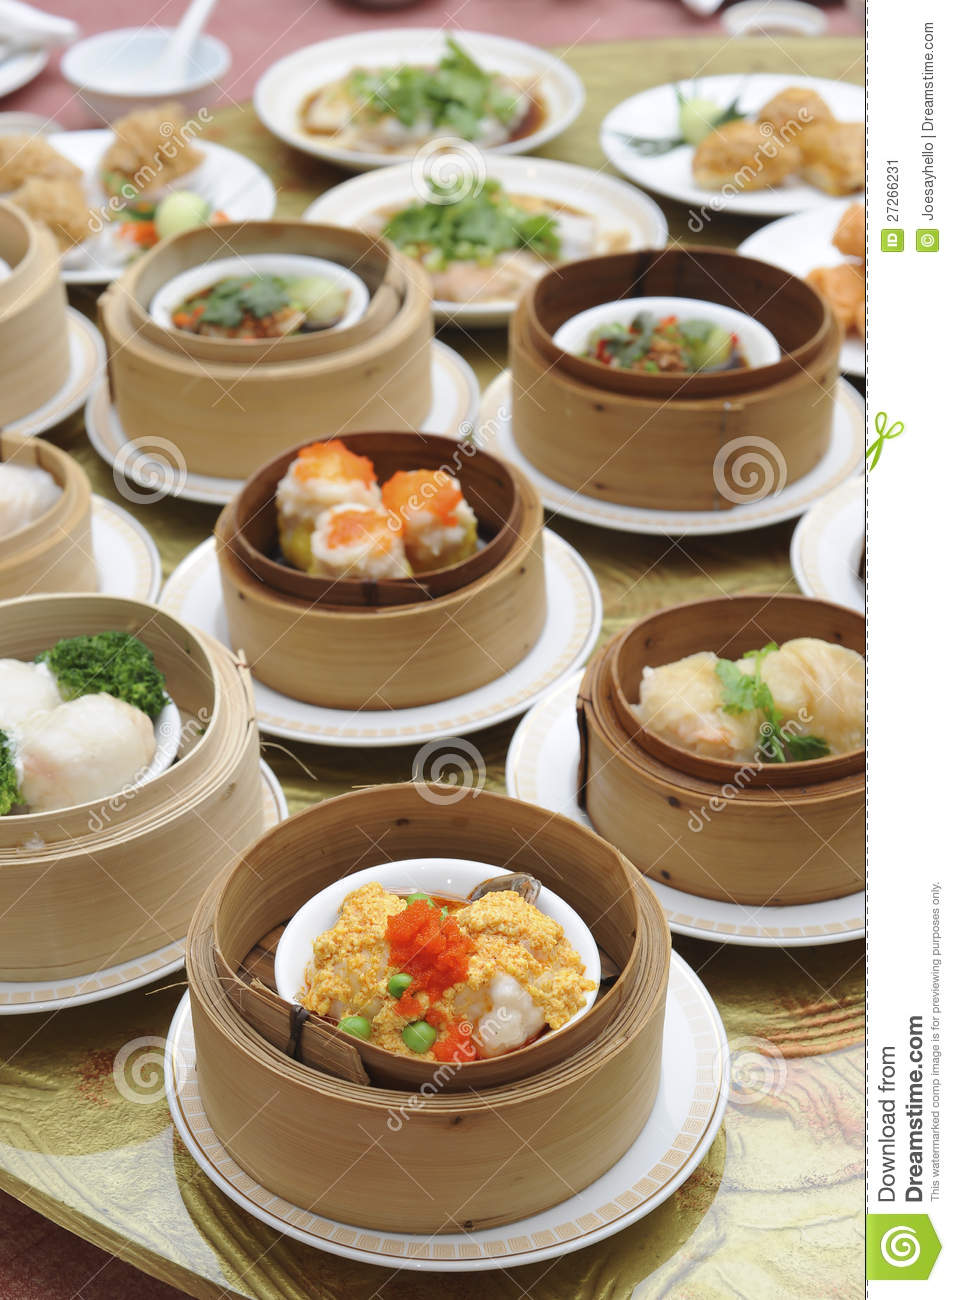 Dim sum asian cuisine menu stock image image 27266231 for Azian cuisine menu